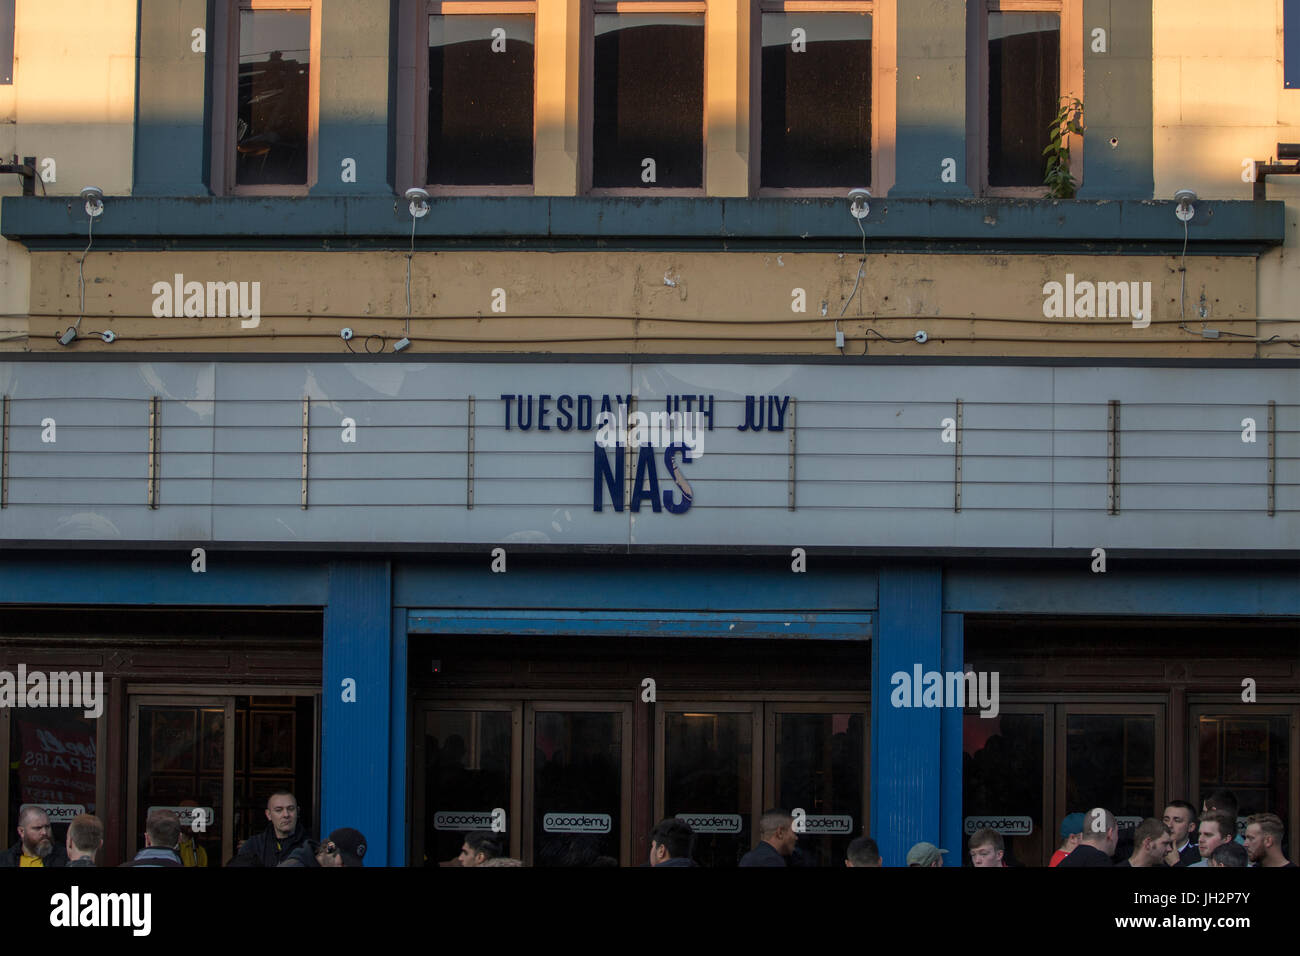 Glasgow, Scotland, UK. 11th July, 2017. Nas performs at the Glasgow O2 Academy during his four-date tour of the - Stock Image